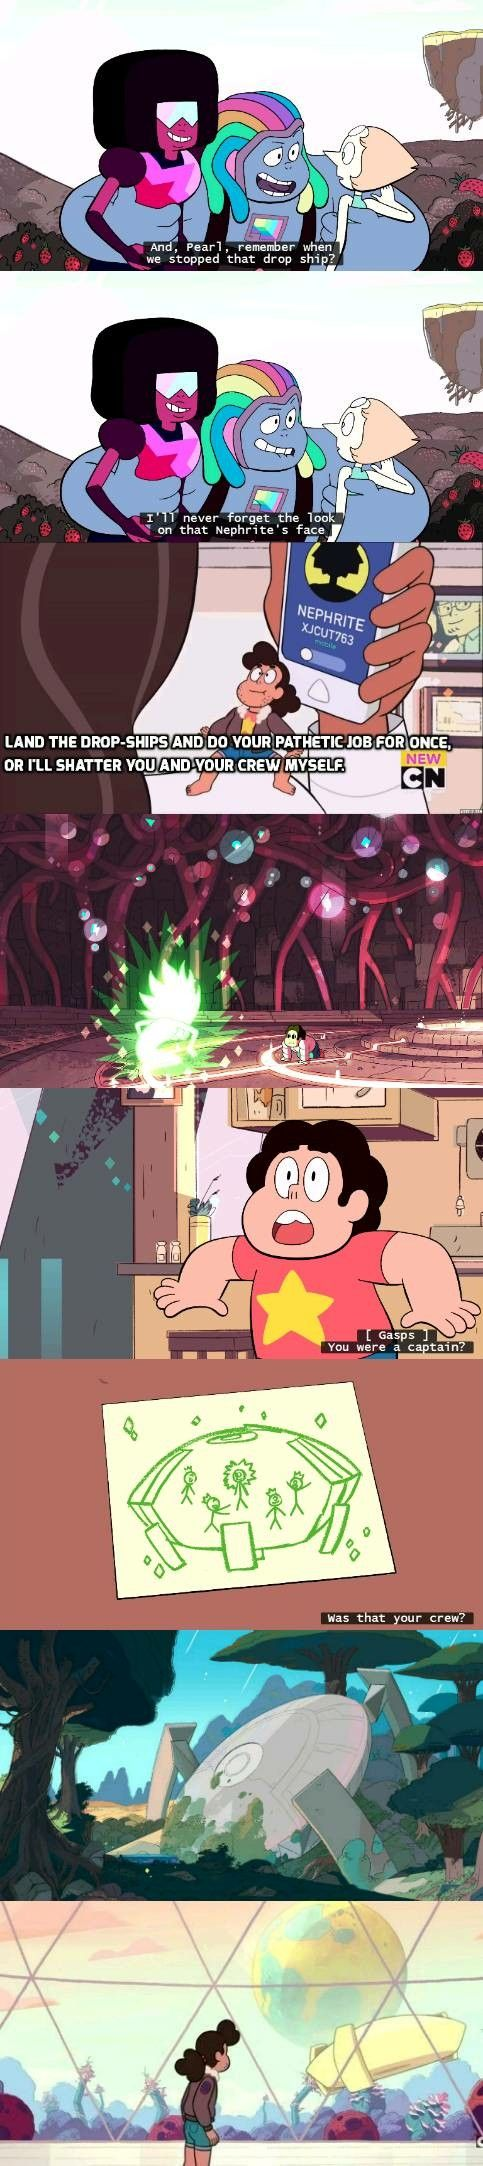 Nephrite = Centi = SERVED FOR YELLOW DIAMOND??? Wait how did ppl not notice on centis drawings theres a yellow gem. So that yellow gem is YELLOW DIAMOND